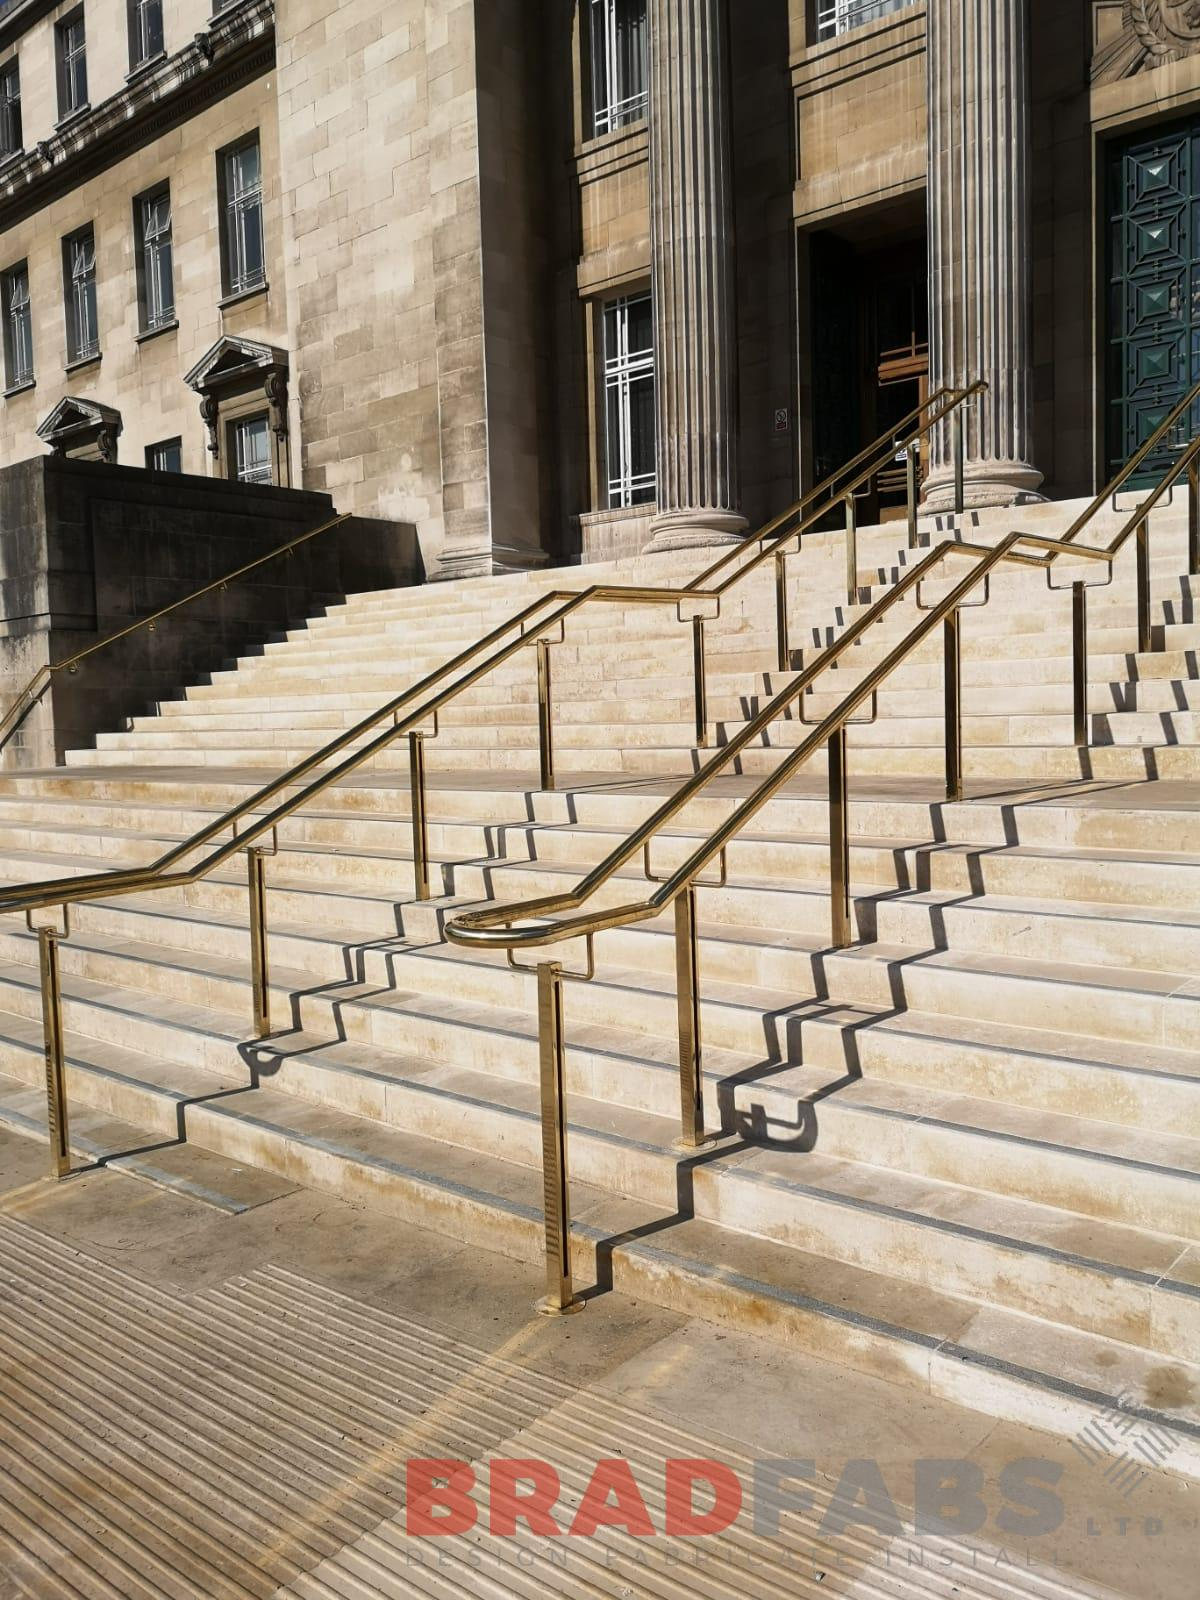 Brass railings for a university, bespoke by Bradfabs